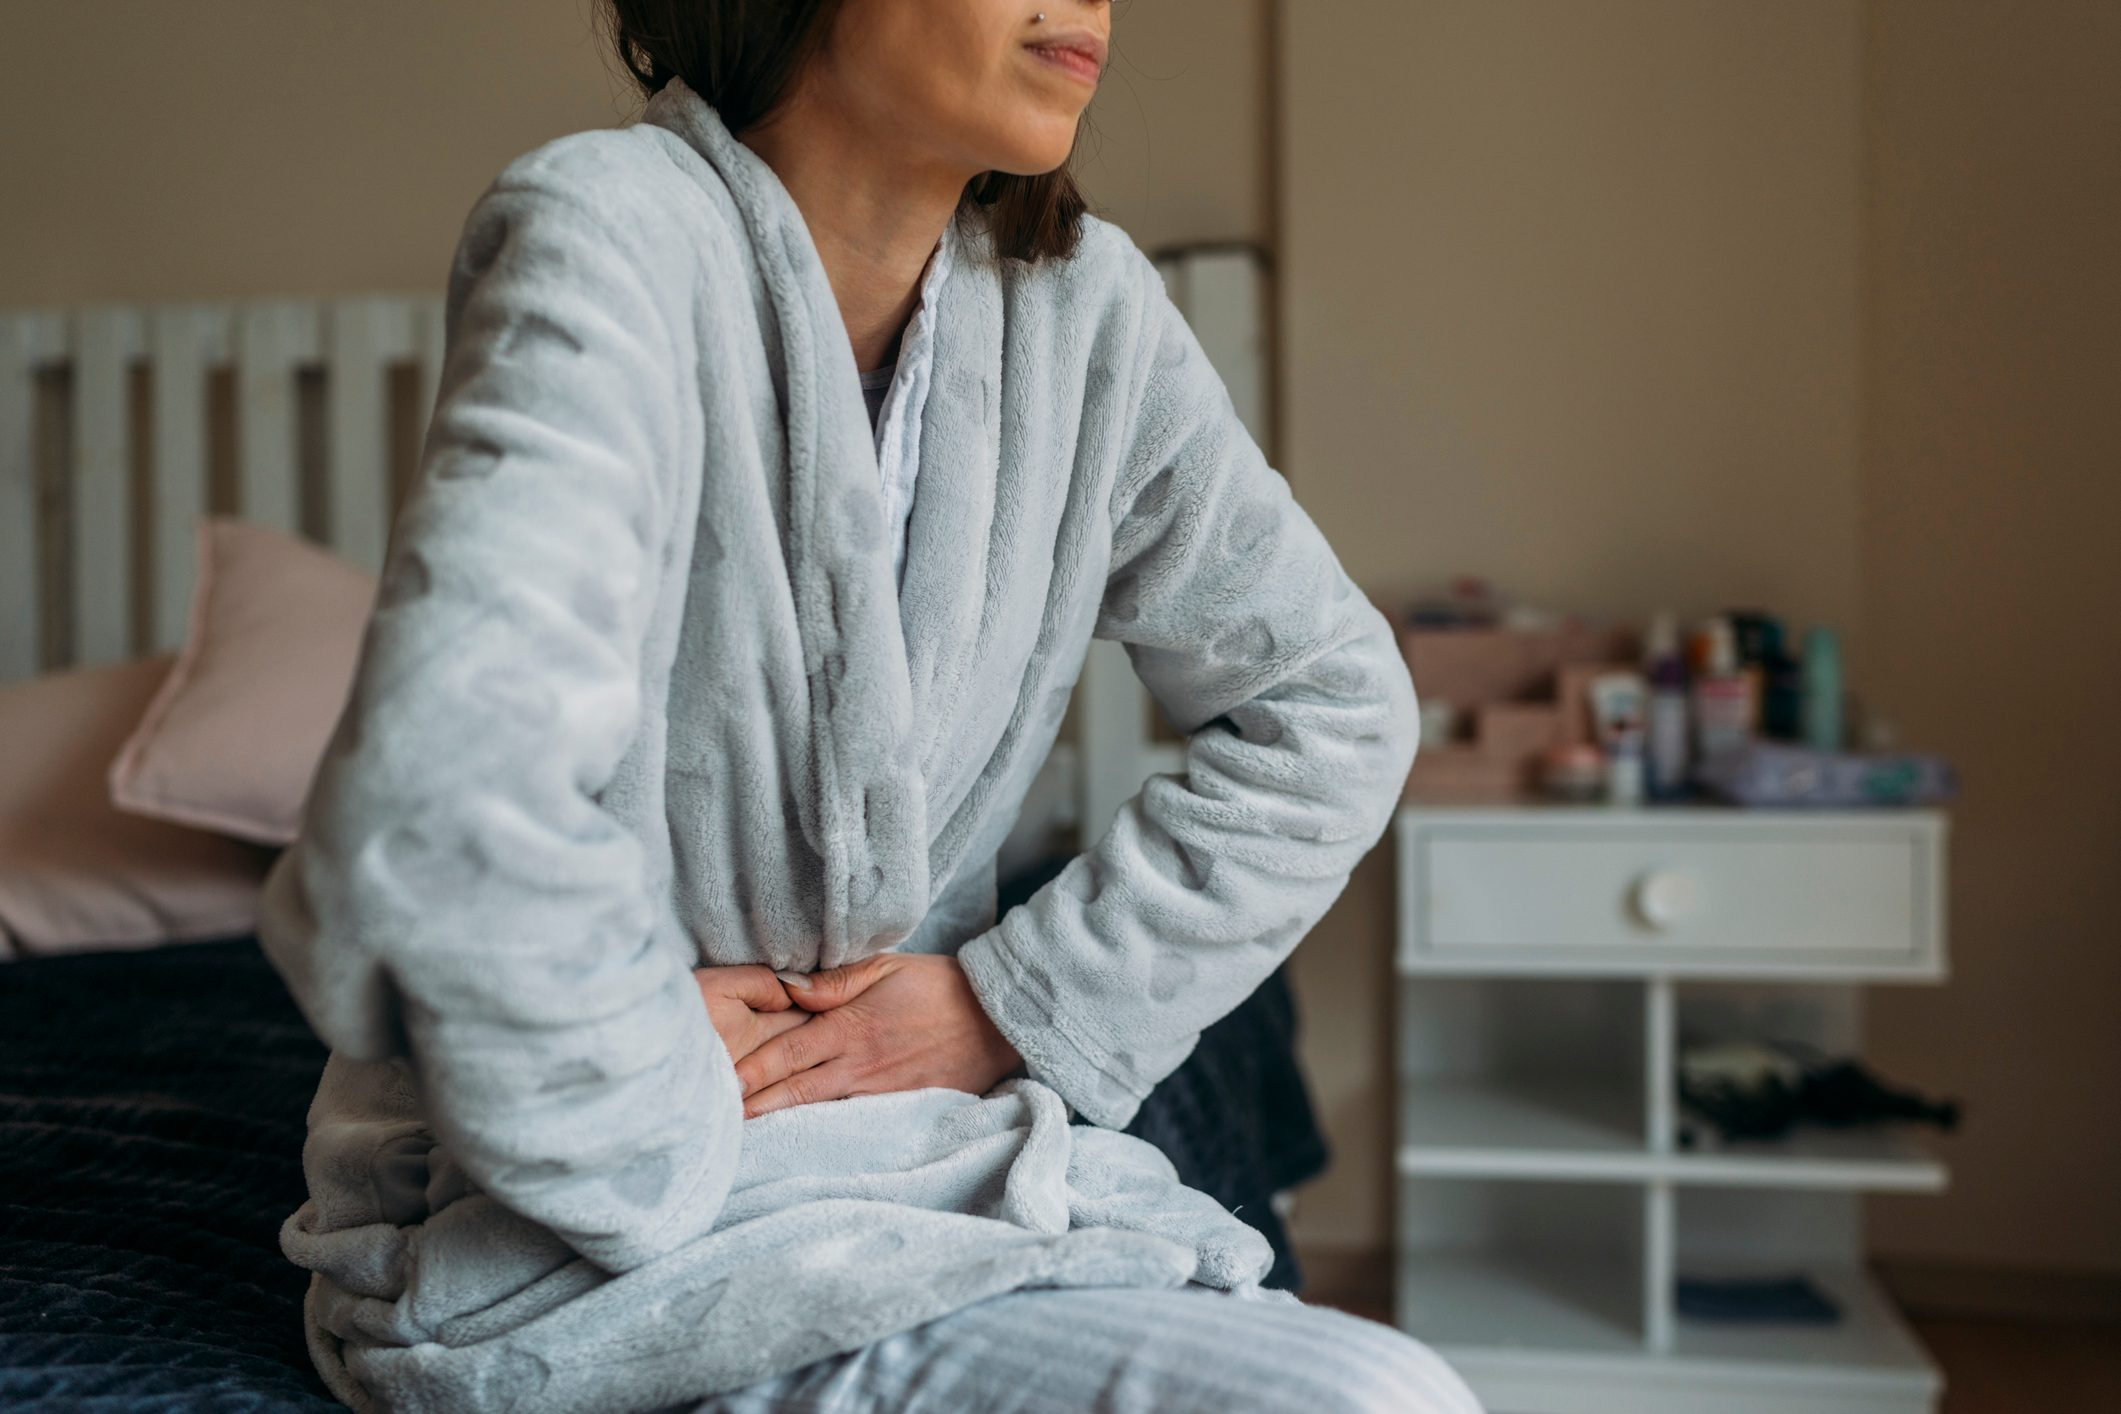 woman sitting on bed with Abdominal pain